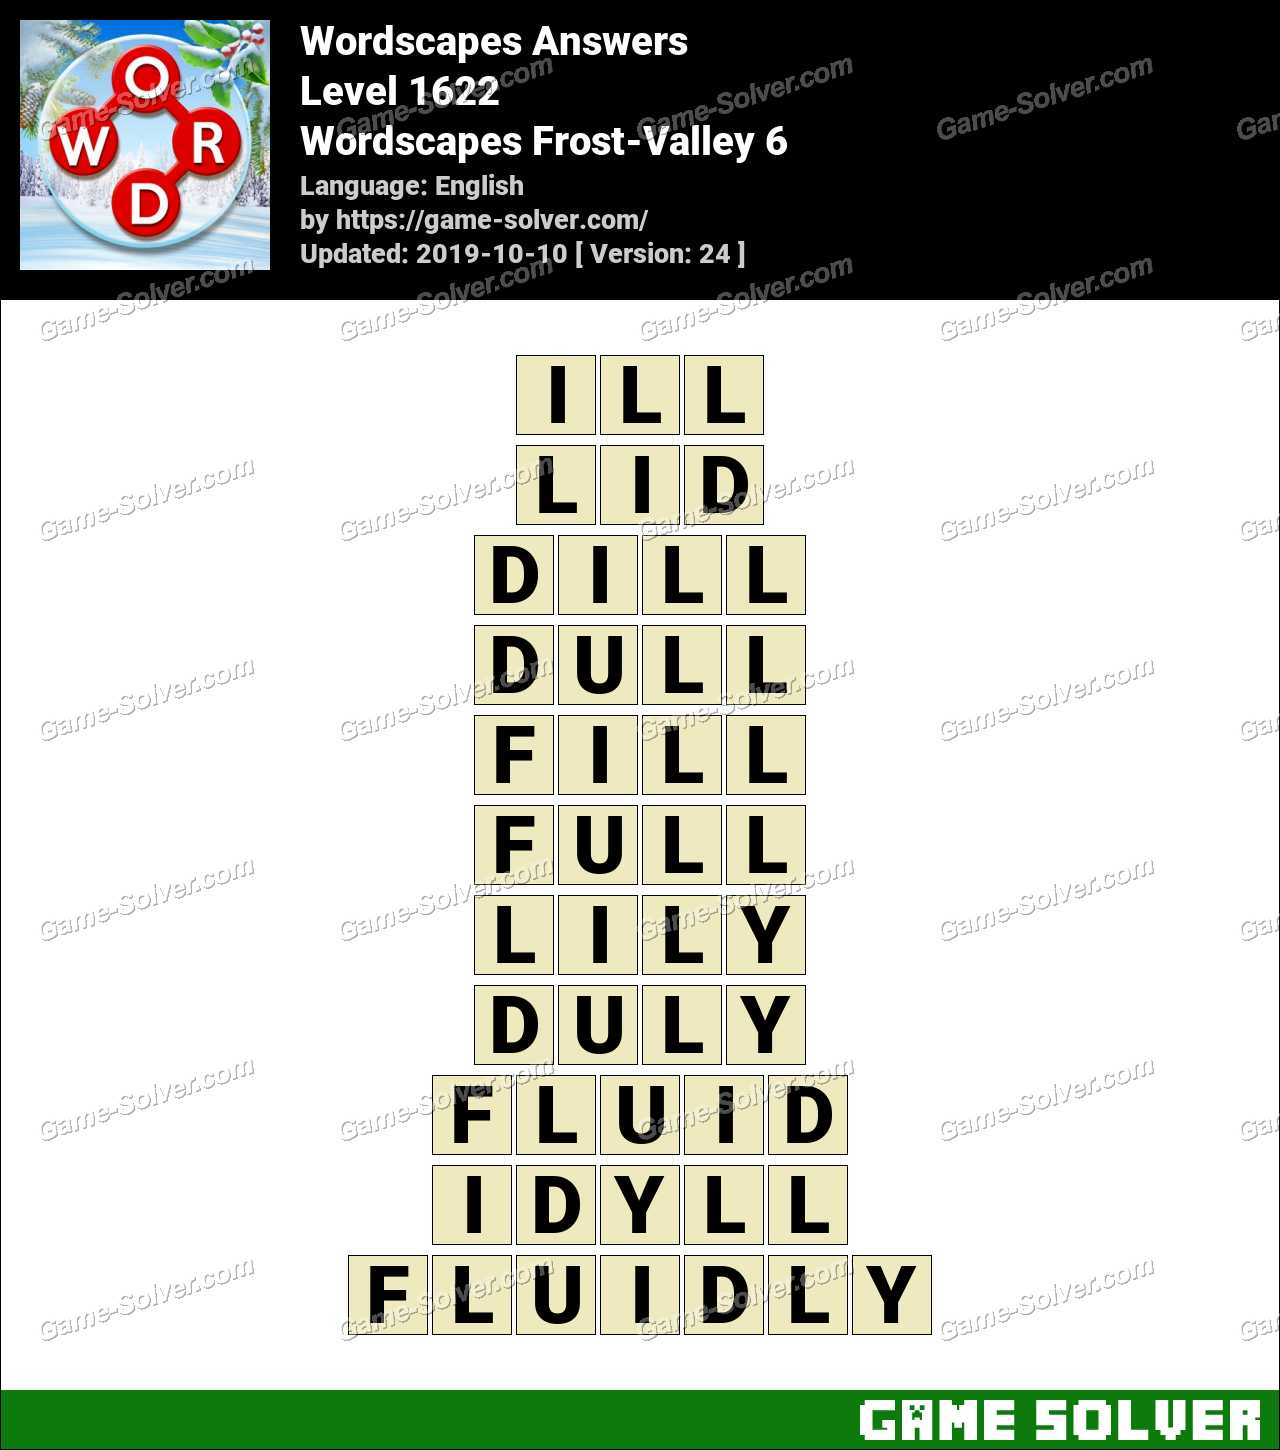 Wordscapes Frost-Valley 6 Answers